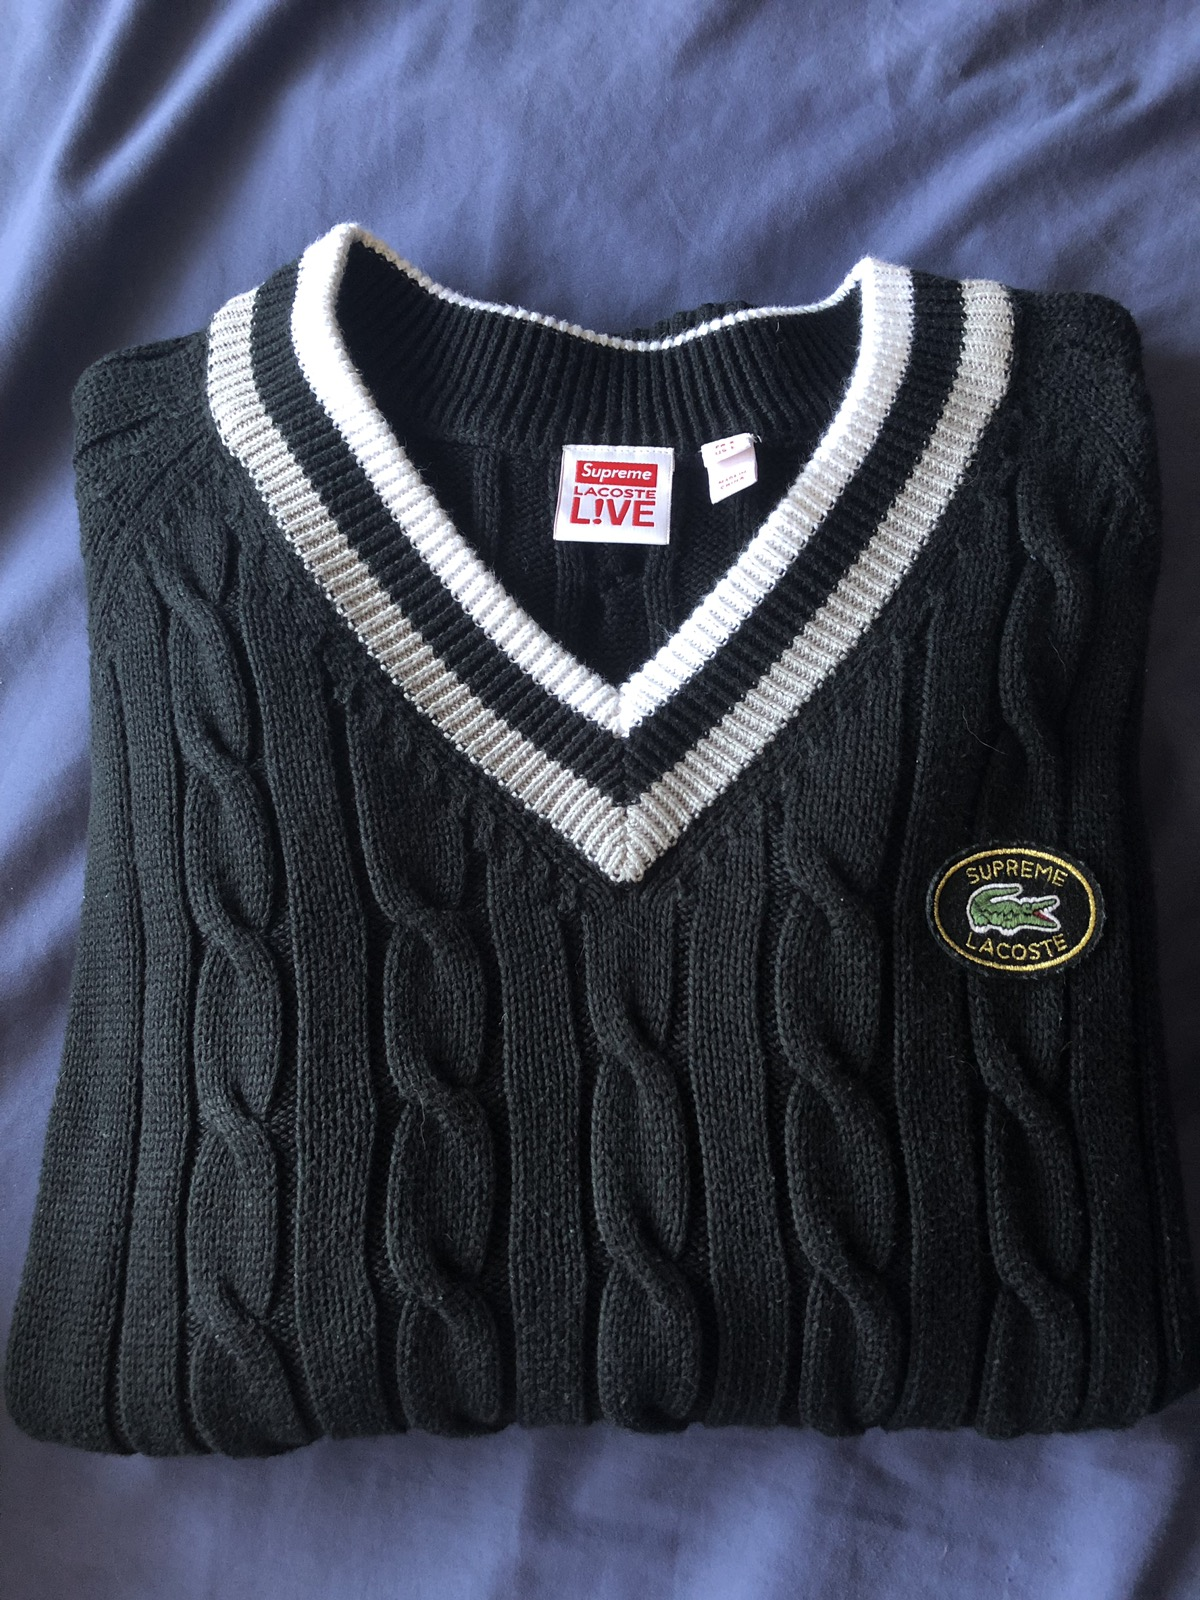 Men S Tennis Sweater From Supreme Lacoste Grailed